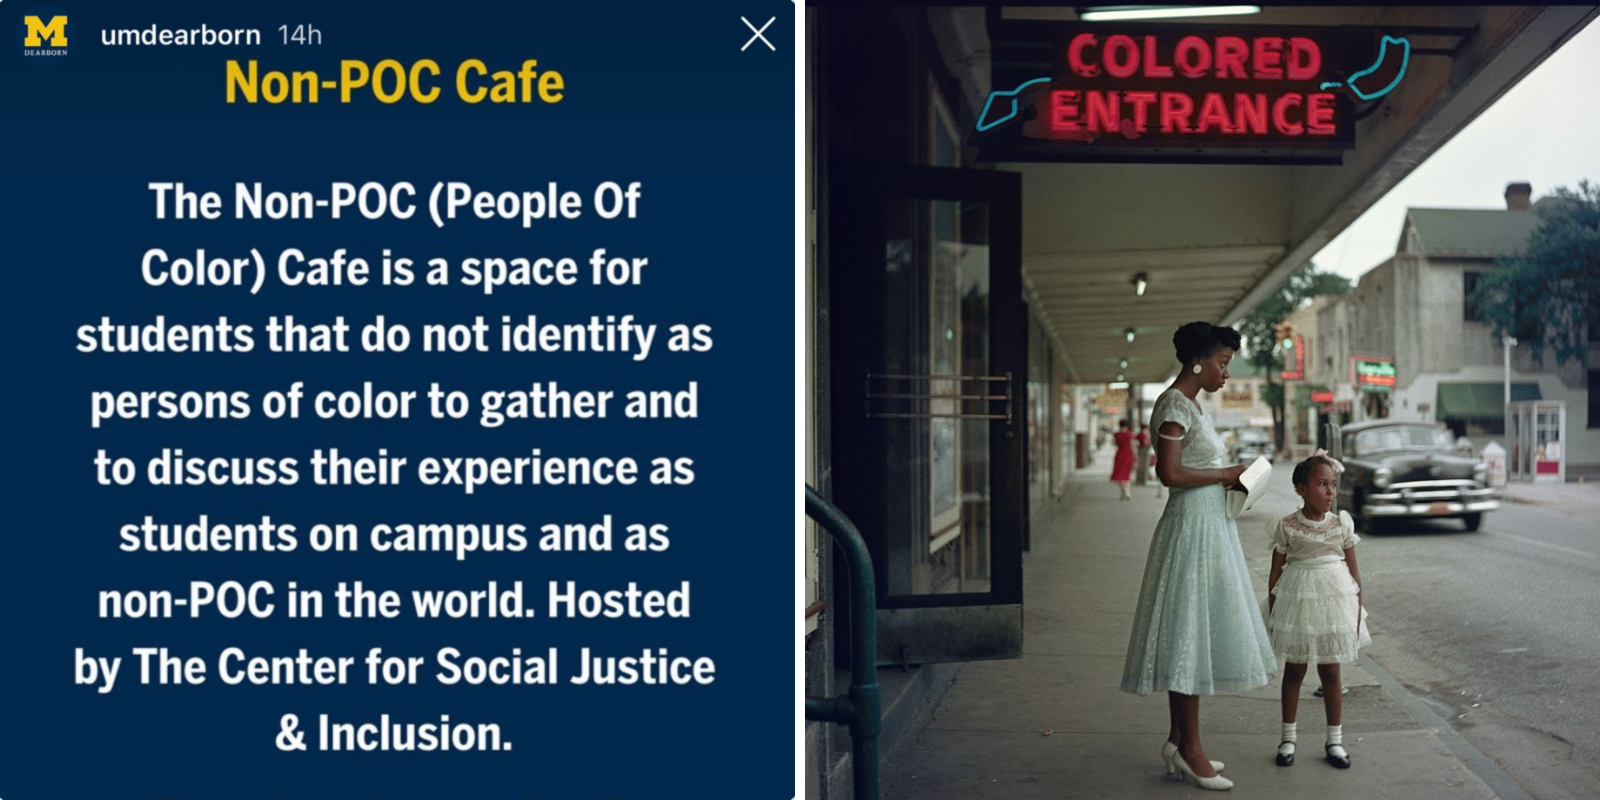 University campus hosts whites-only cafe in the name of equality